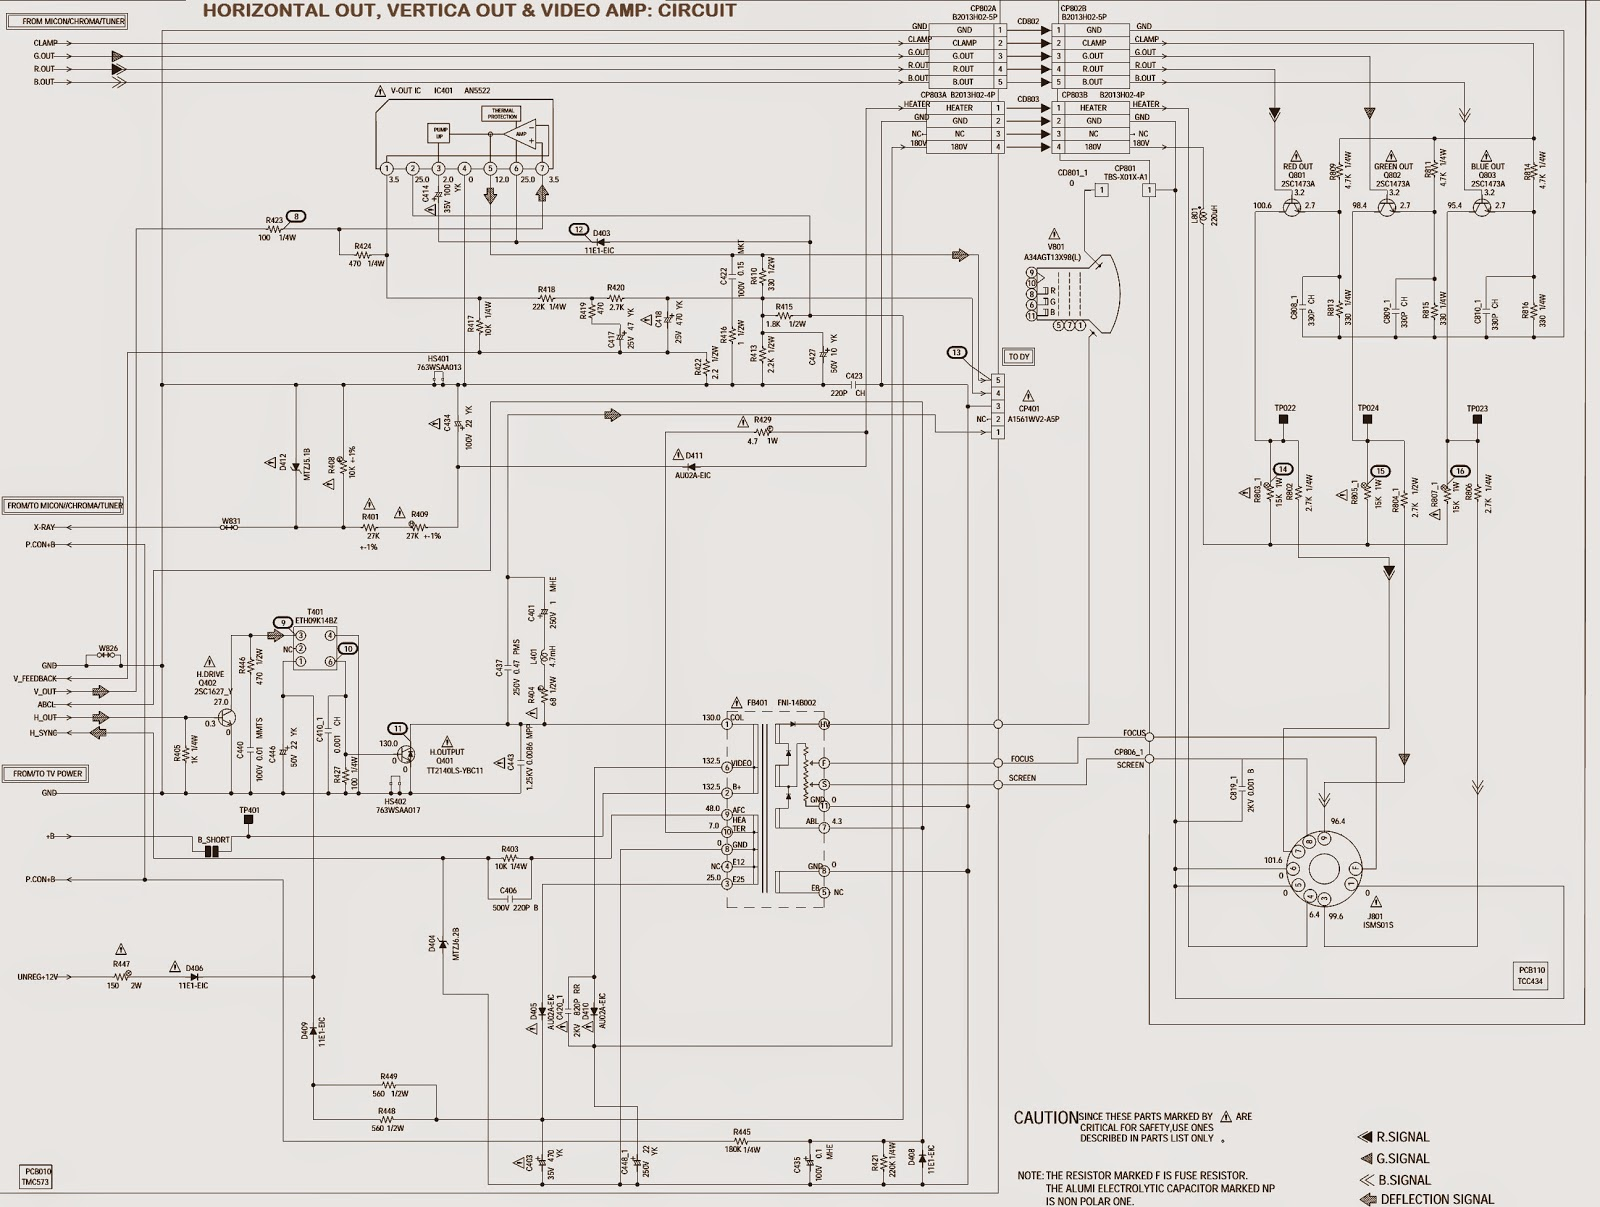 PANASONIC CTZ1423 _ CIRCUIT DIAGRAM (Schematic)  SMPS